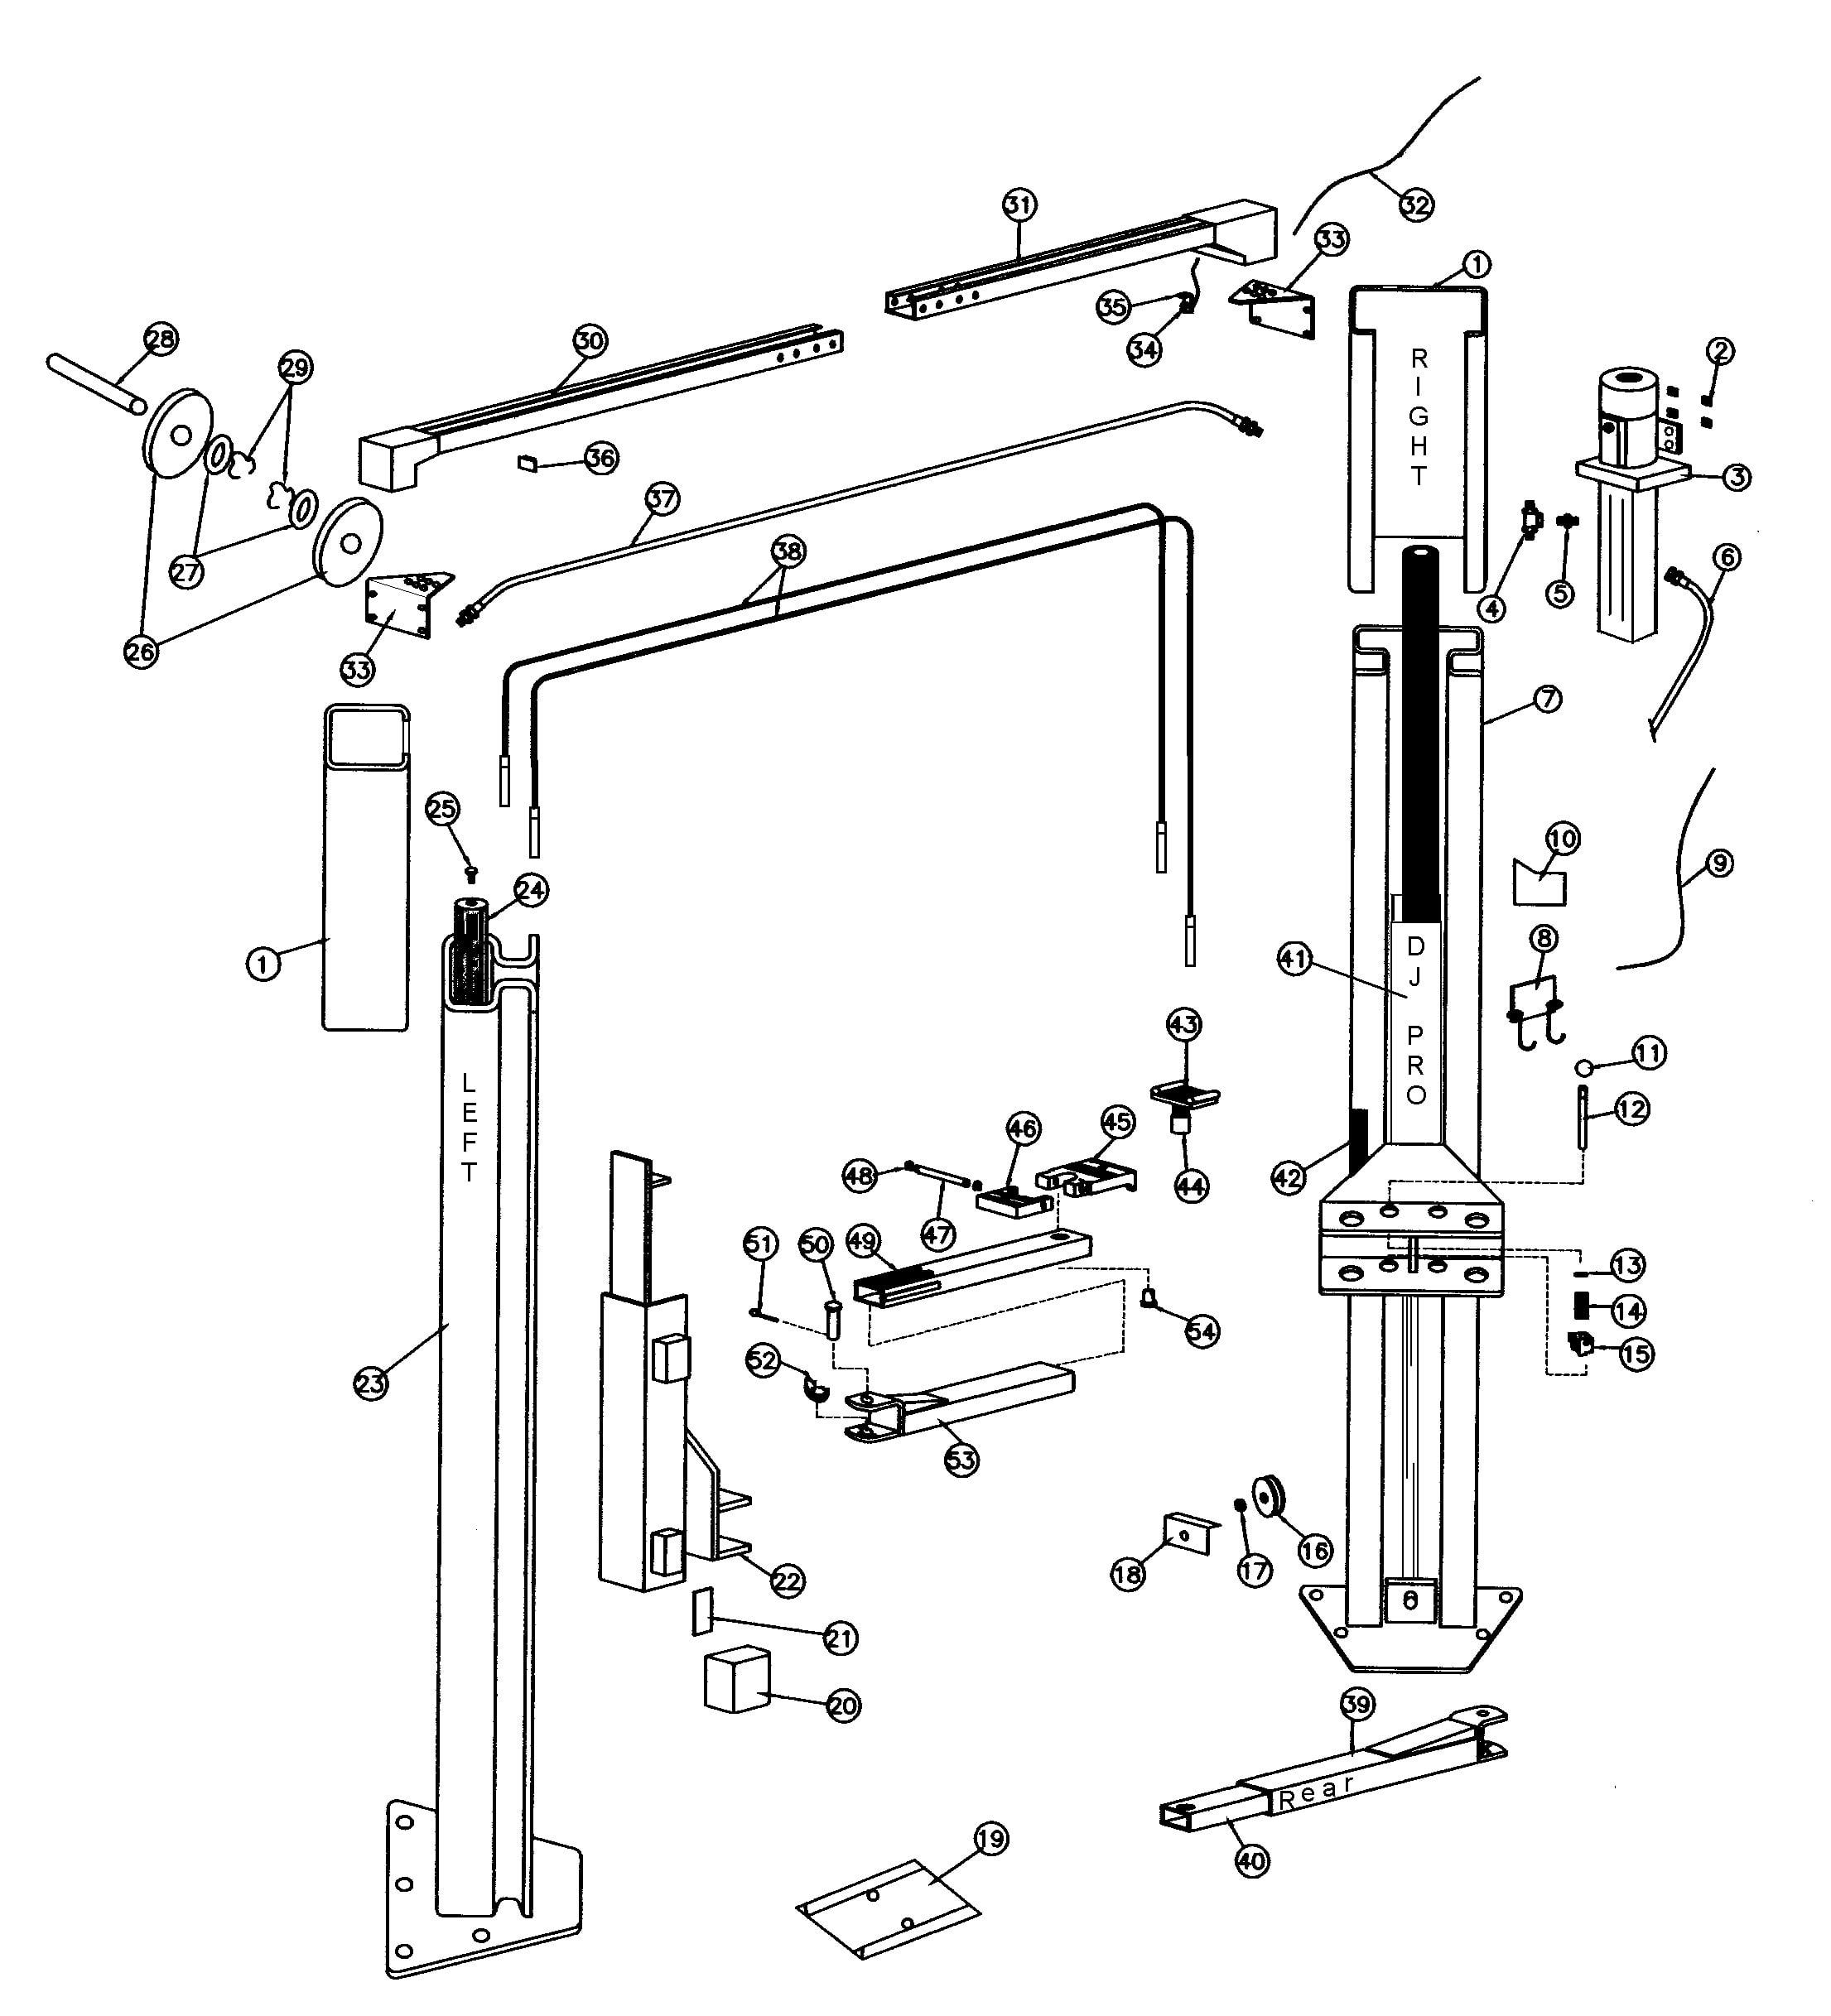 Parts for Rotary A10i EH-1 | SVI International, Inc. on lift pump diagram, lift accessories, lift motor diagram, lift parts diagram, lift switch diagram,